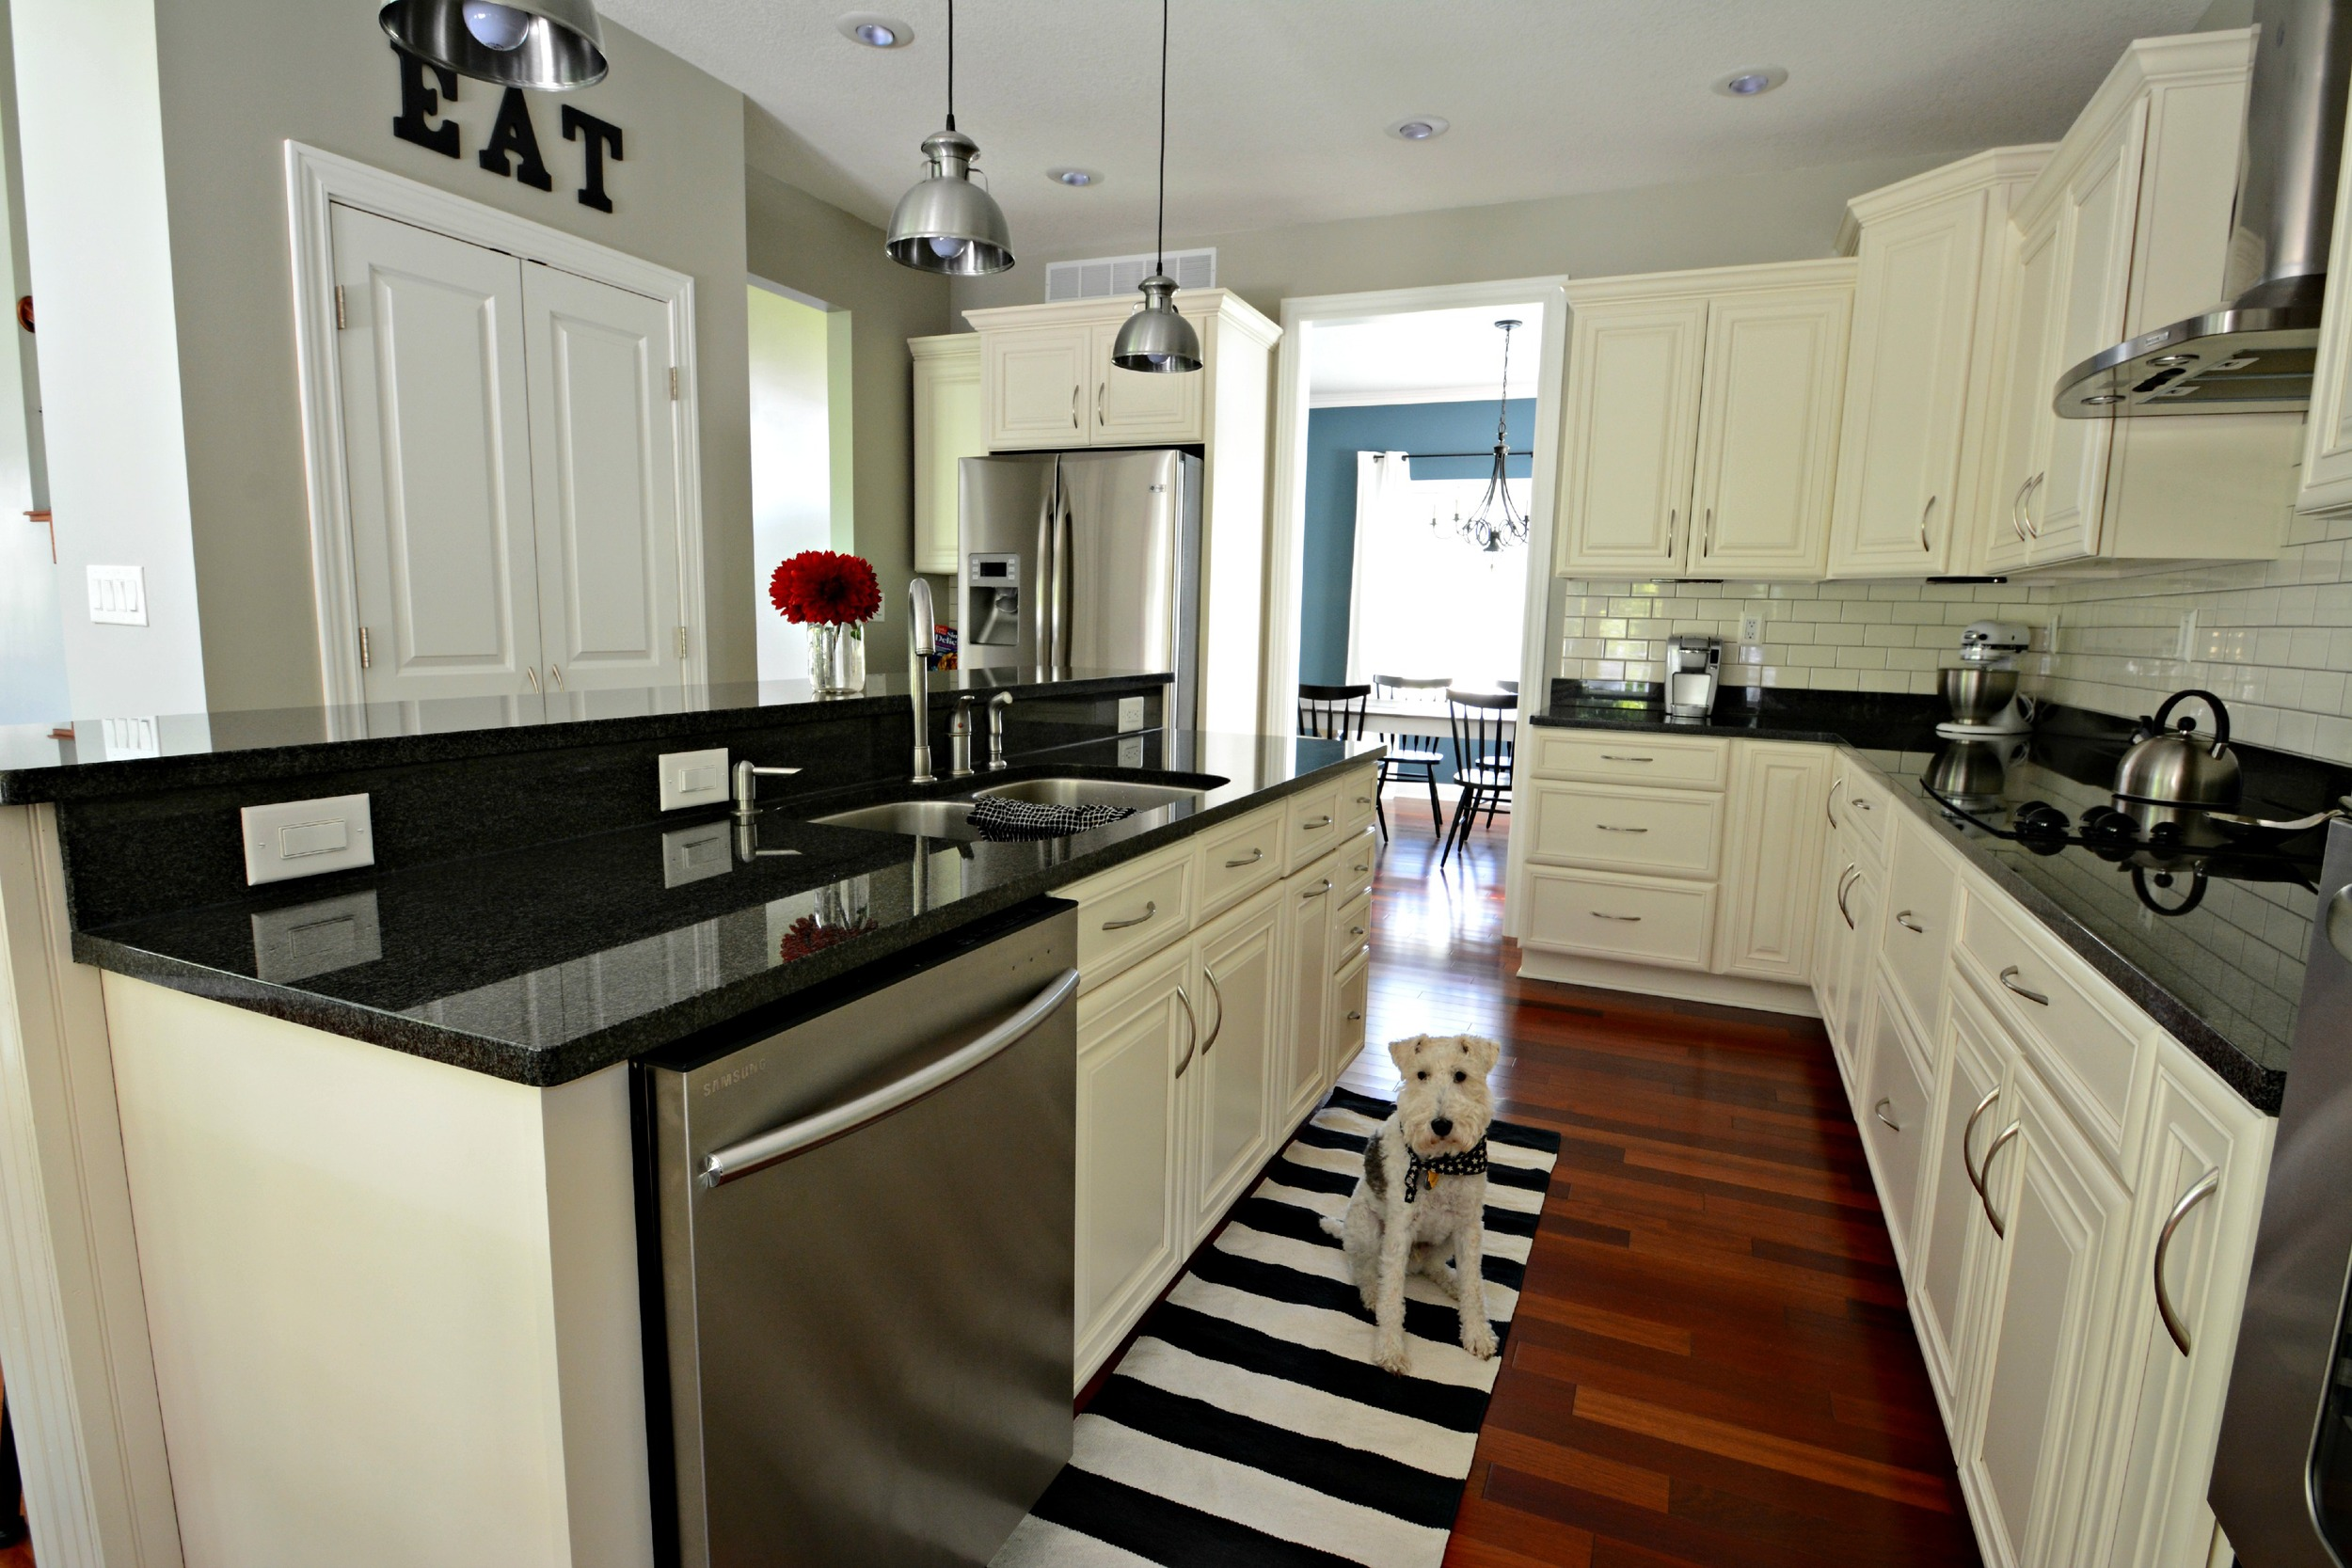 Sherwin Williams Mindful Grey. Subway tile with dark grout. Black Granite. Ivory Cabinets. Industrial Lights.